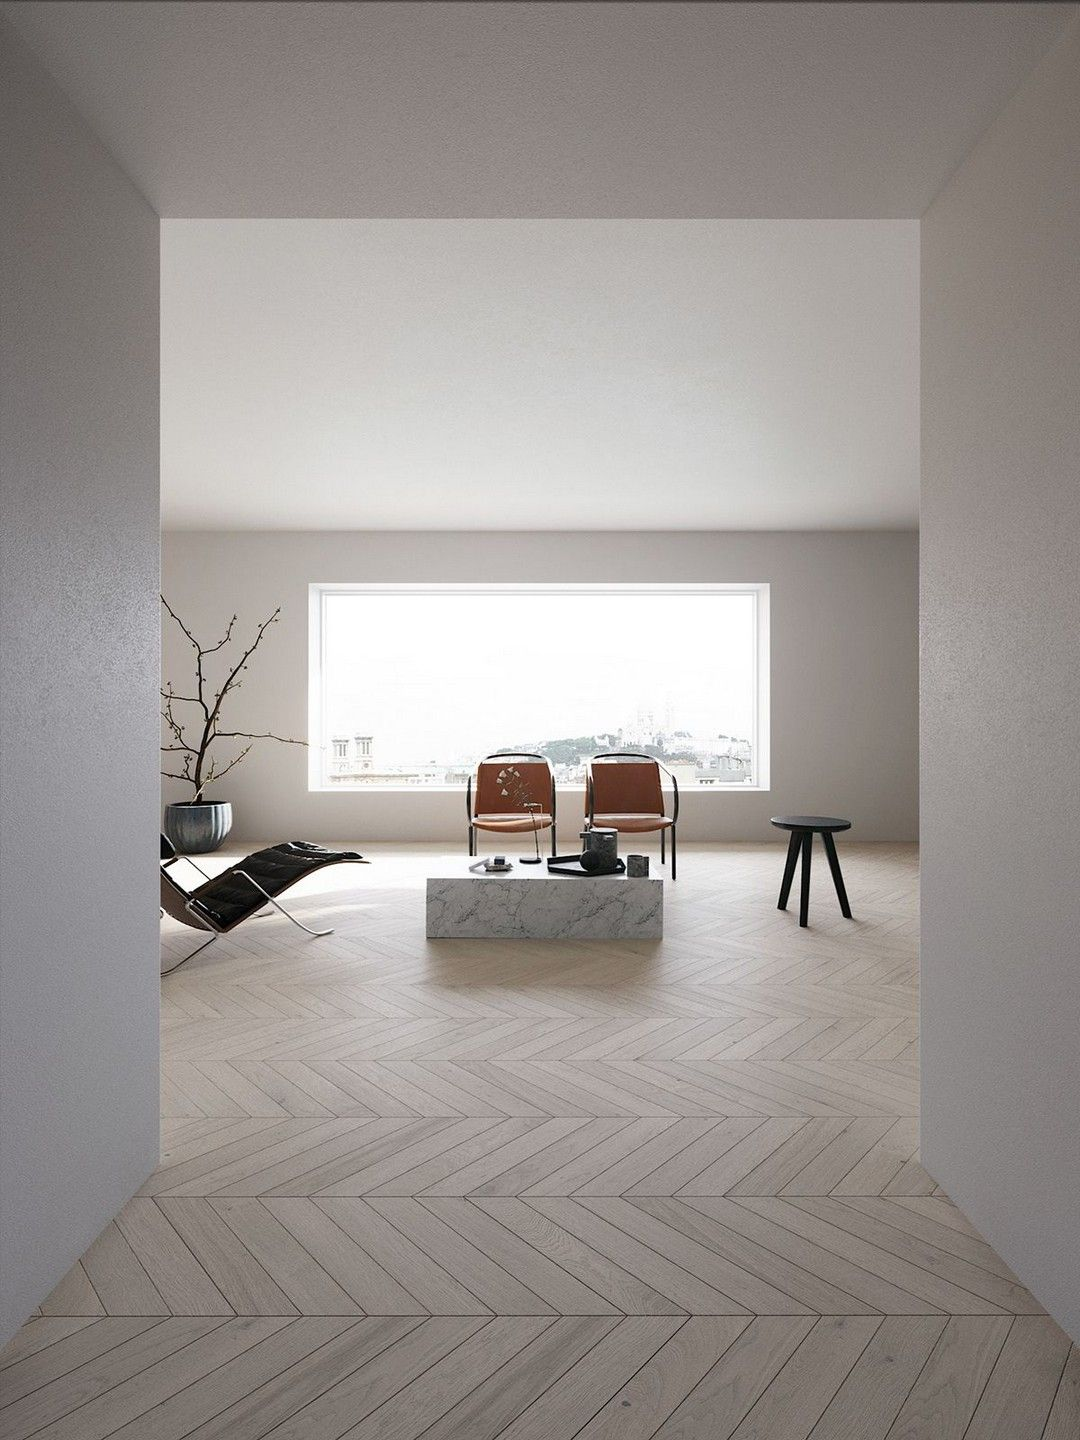 12 How to Decorate a Minimal Interior with Personality Minimalism Doesn't Mean Going Without